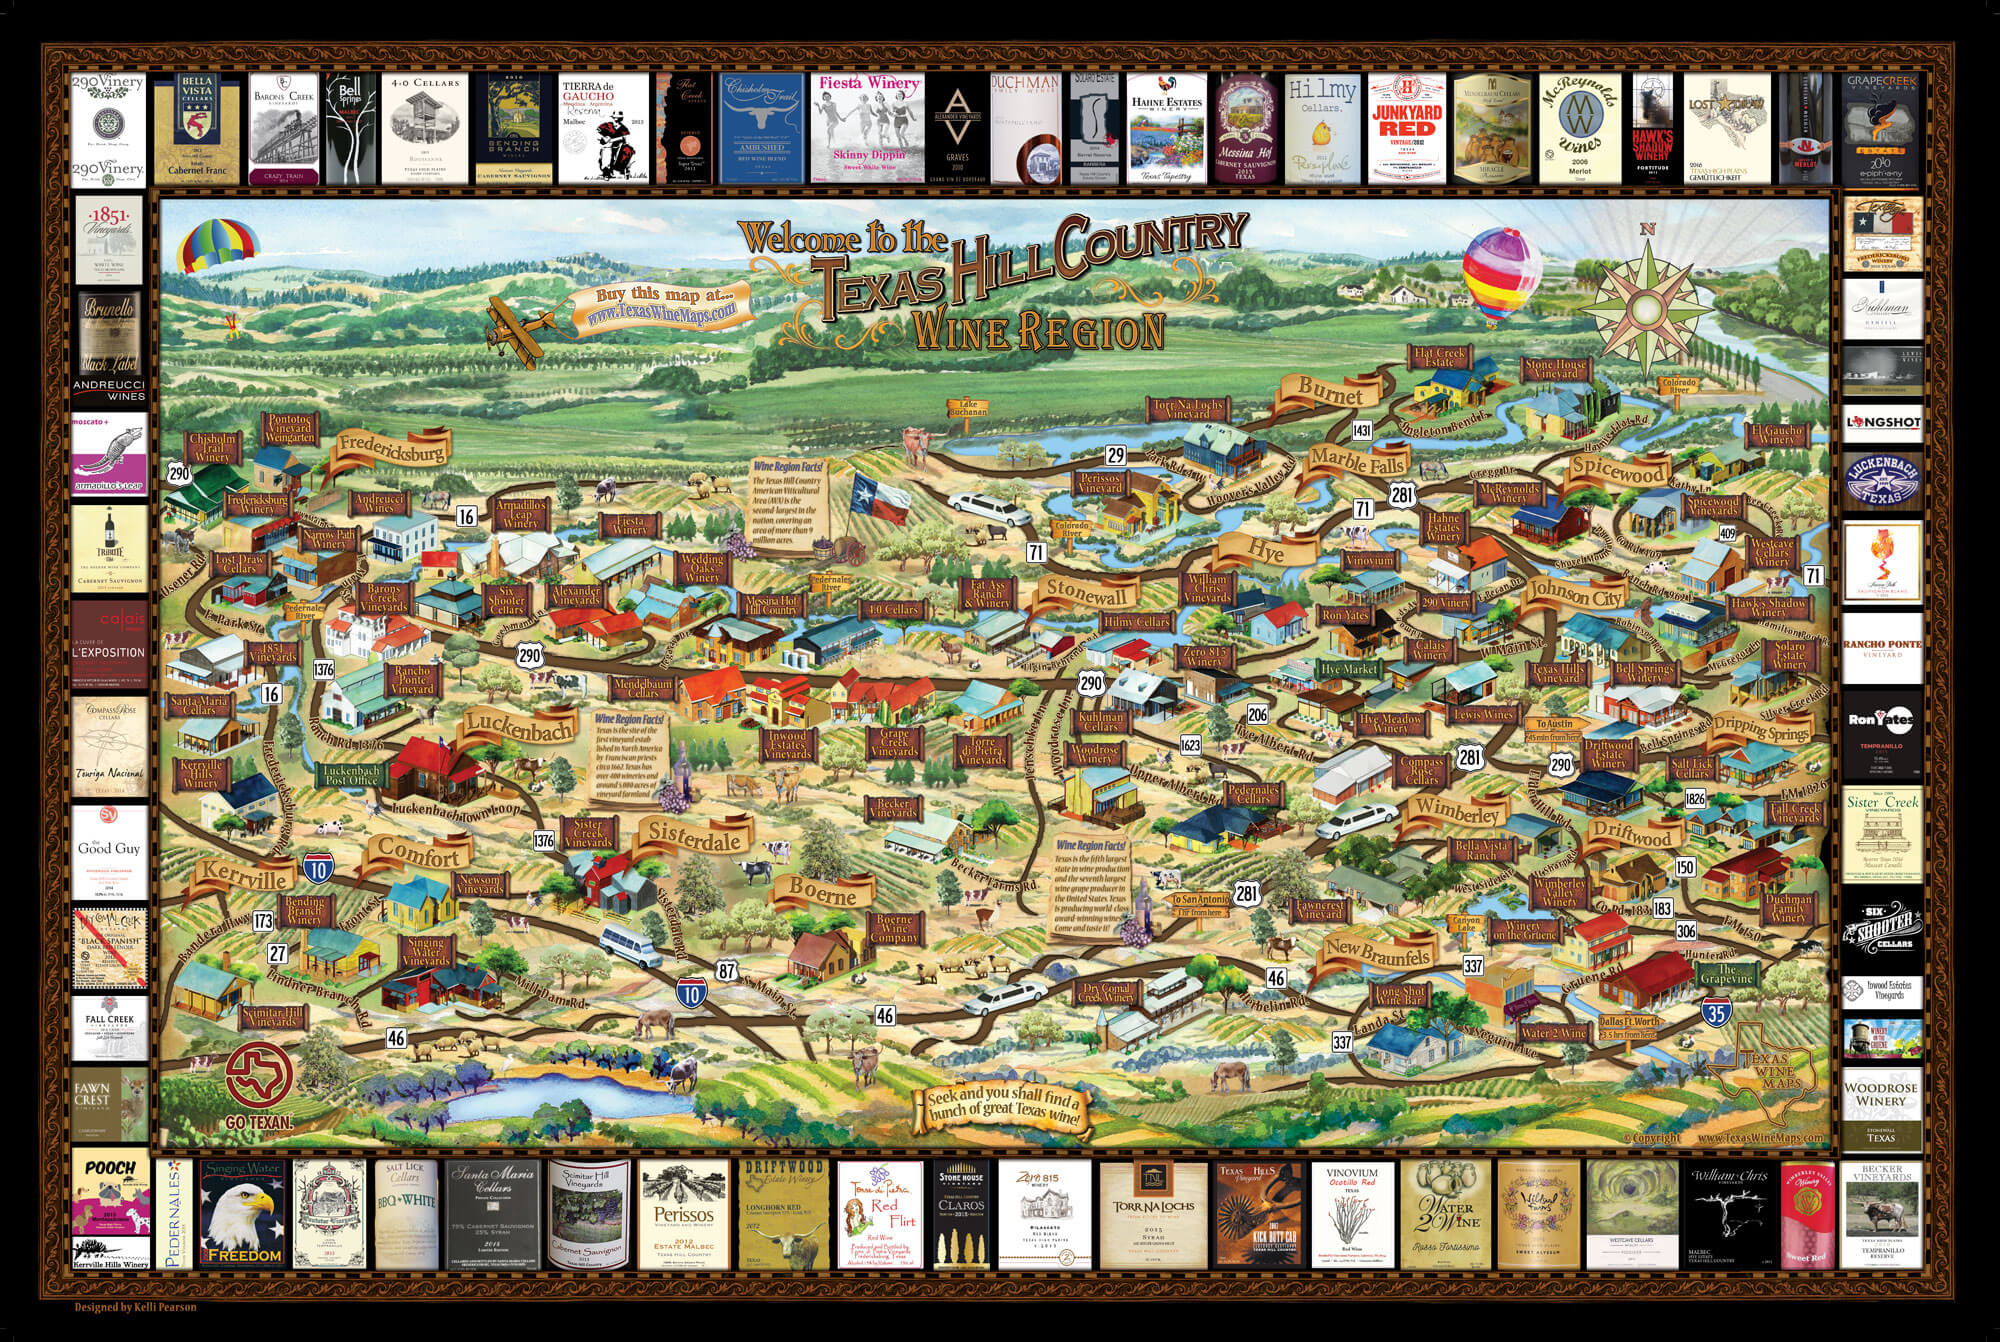 Laminated Texas Wine Map | Texas Wineries Map |Texas Hill Country - Texas Wine Country Map